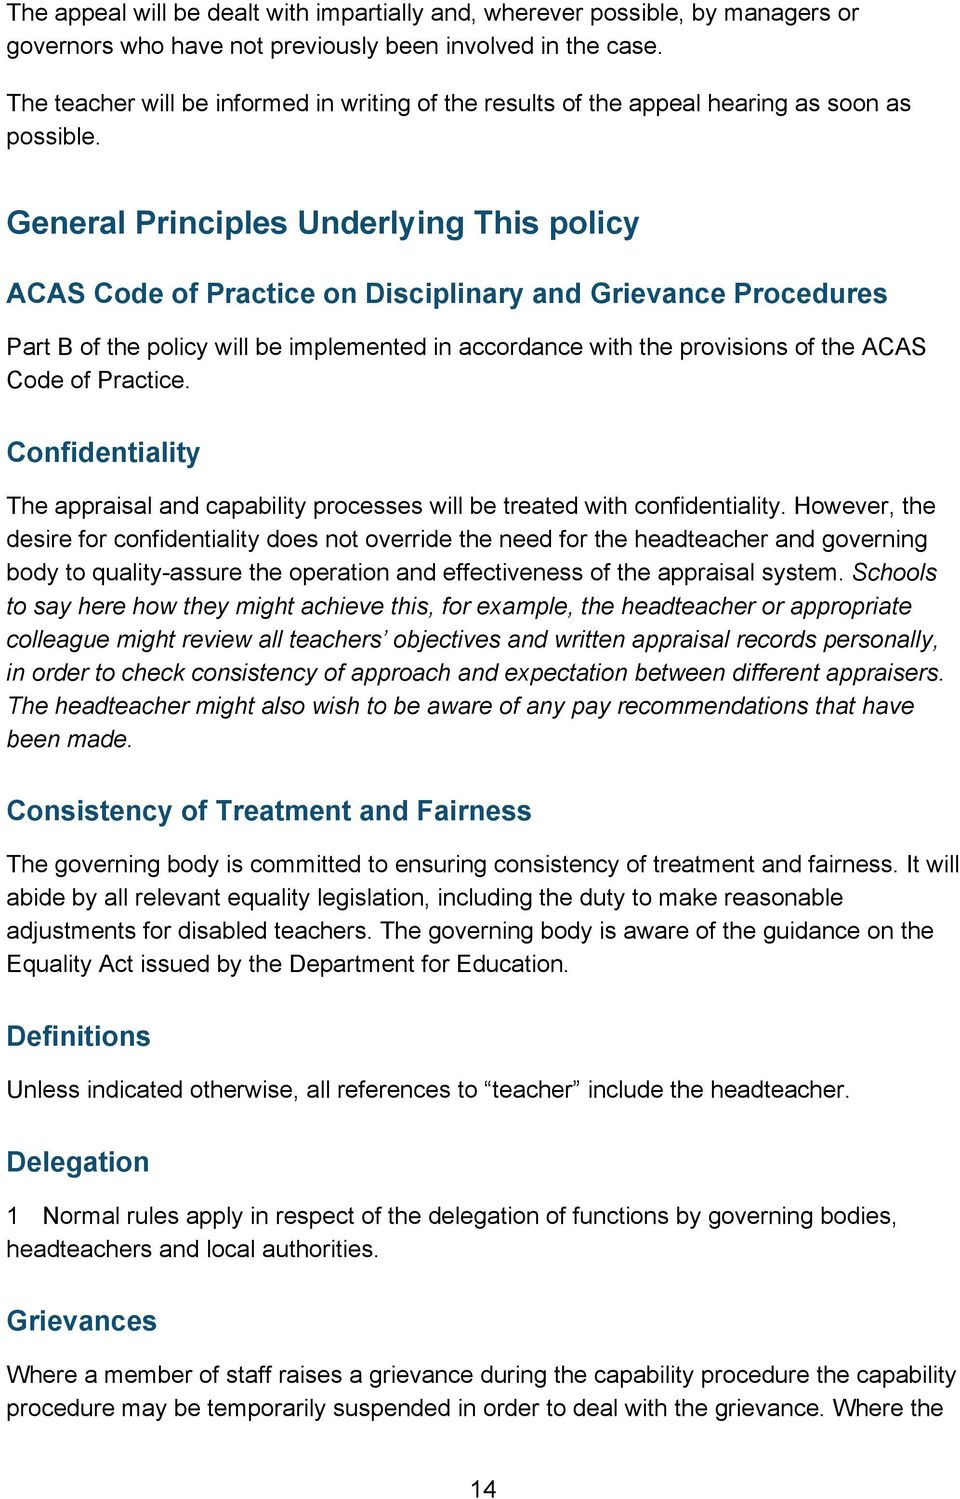 General Principles Underlying This policy ACAS Code of Practice on Disciplinary and Grievance Procedures Part B of the policy will be implemented in accordance with the provisions of the ACAS Code of